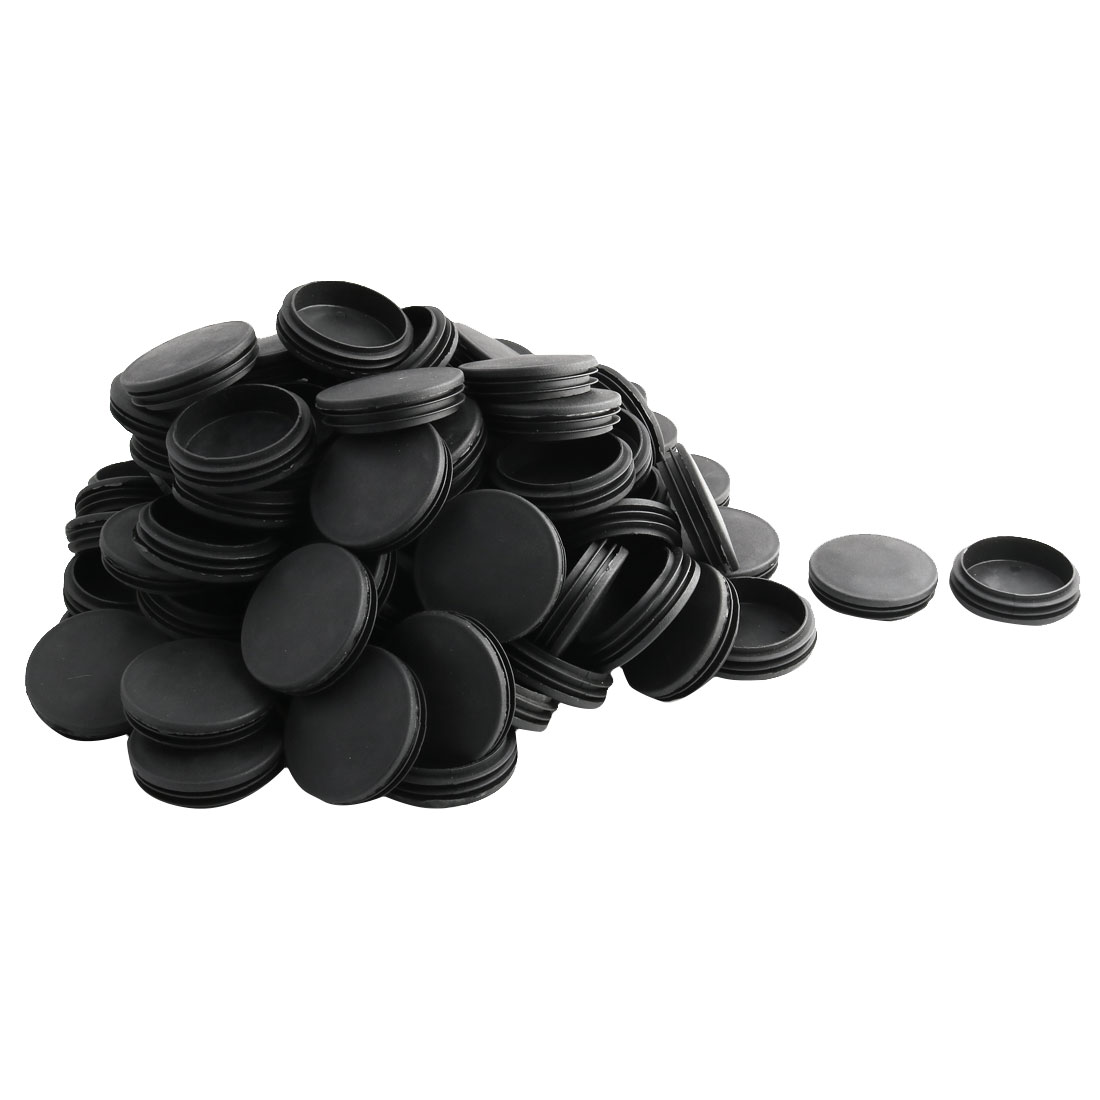 Household Office Plastic Round Furniture Legs Tube Insert Black 74mm Dia 100 Pcs